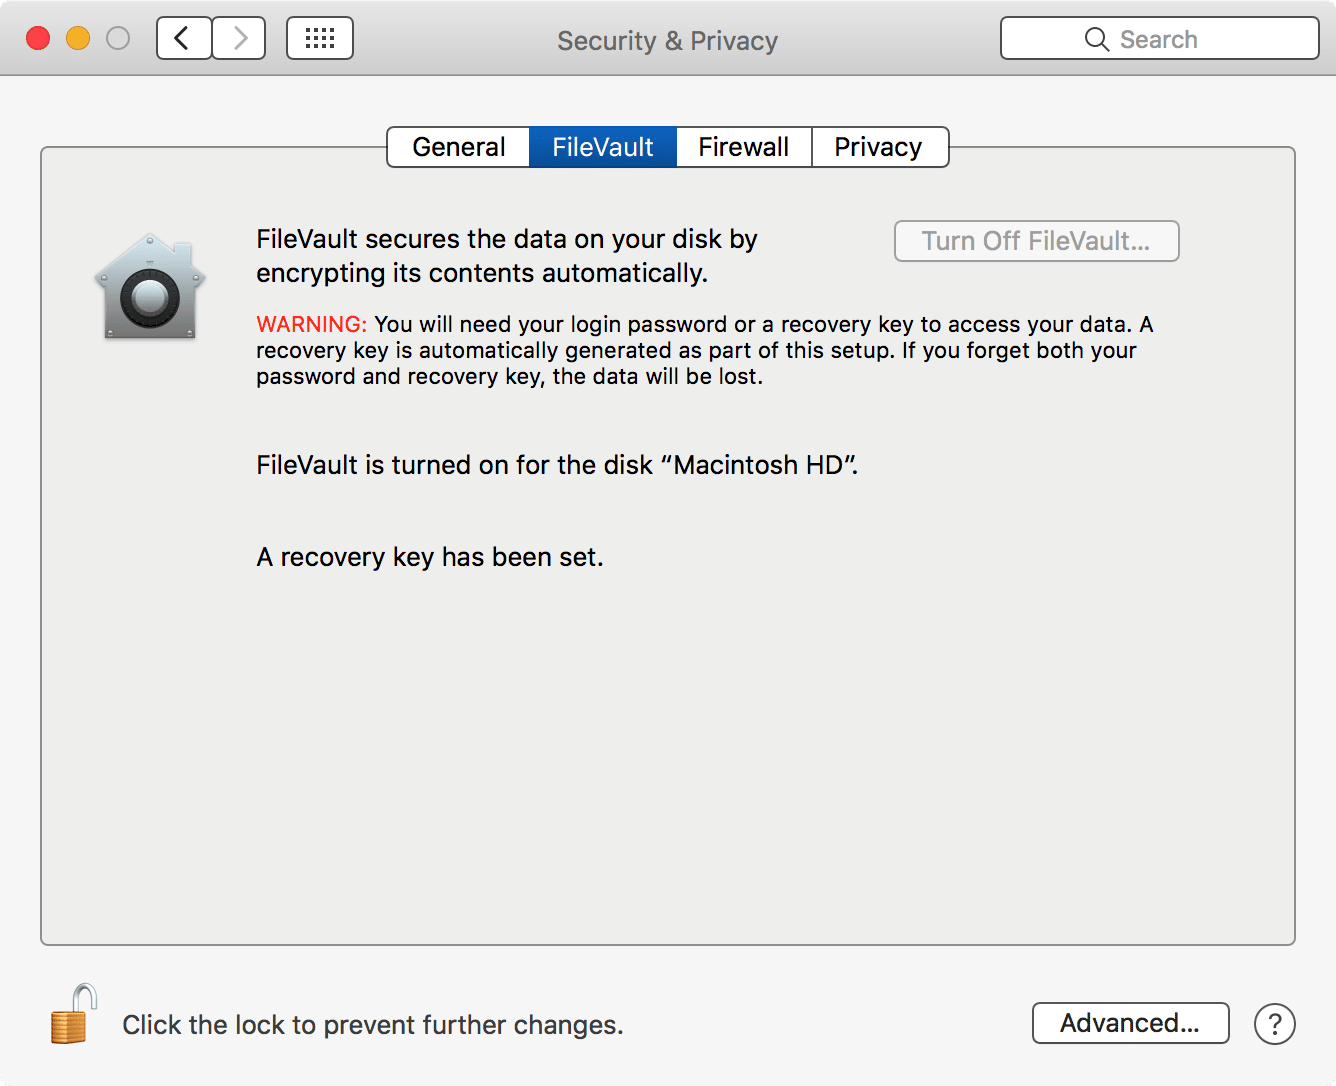 Profile to Enable FileVault 2 only filevault